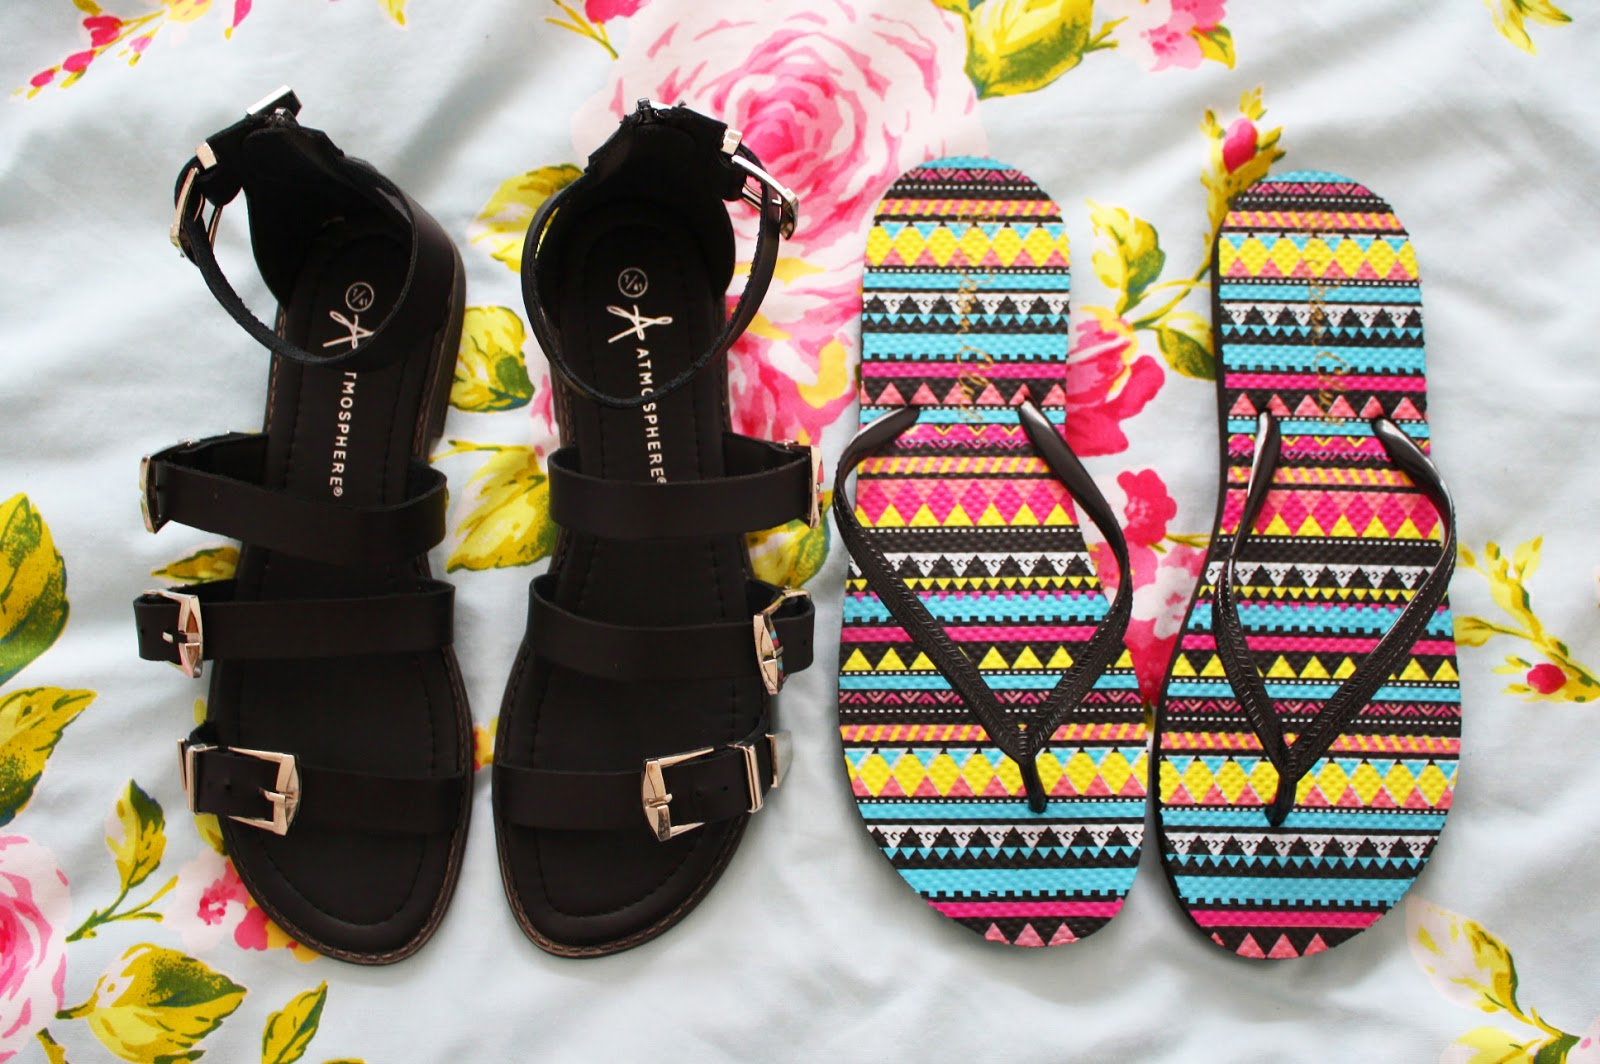 Gladiator sandals and aztec flip flops